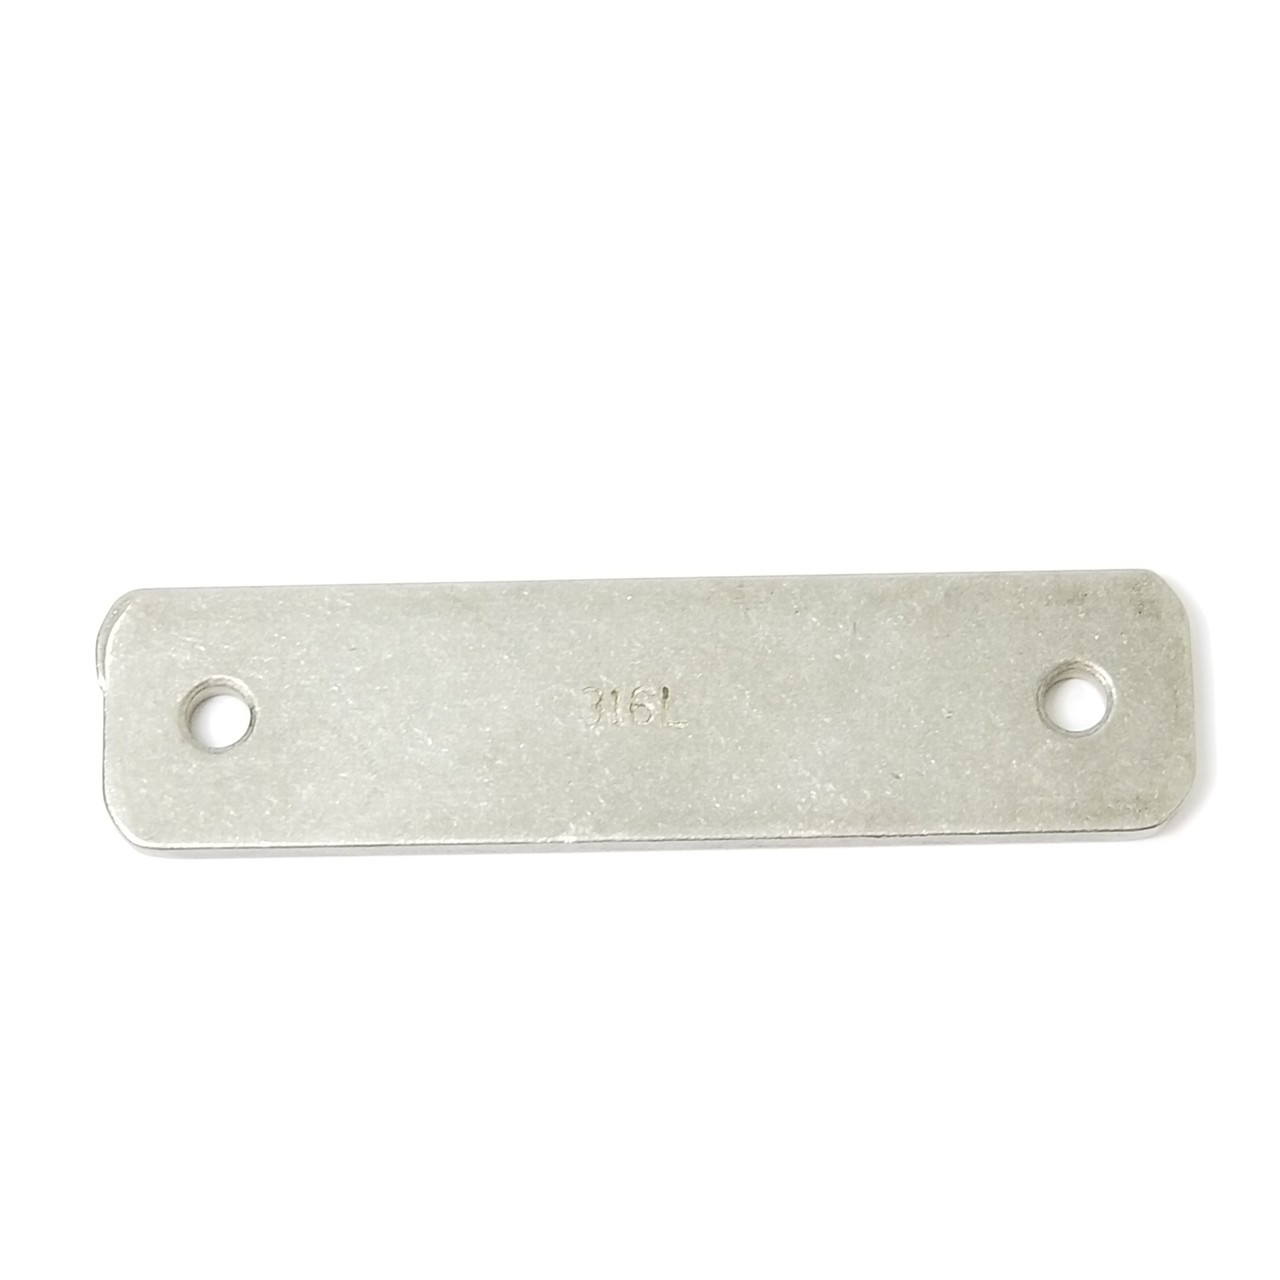 TP7316 Top plate